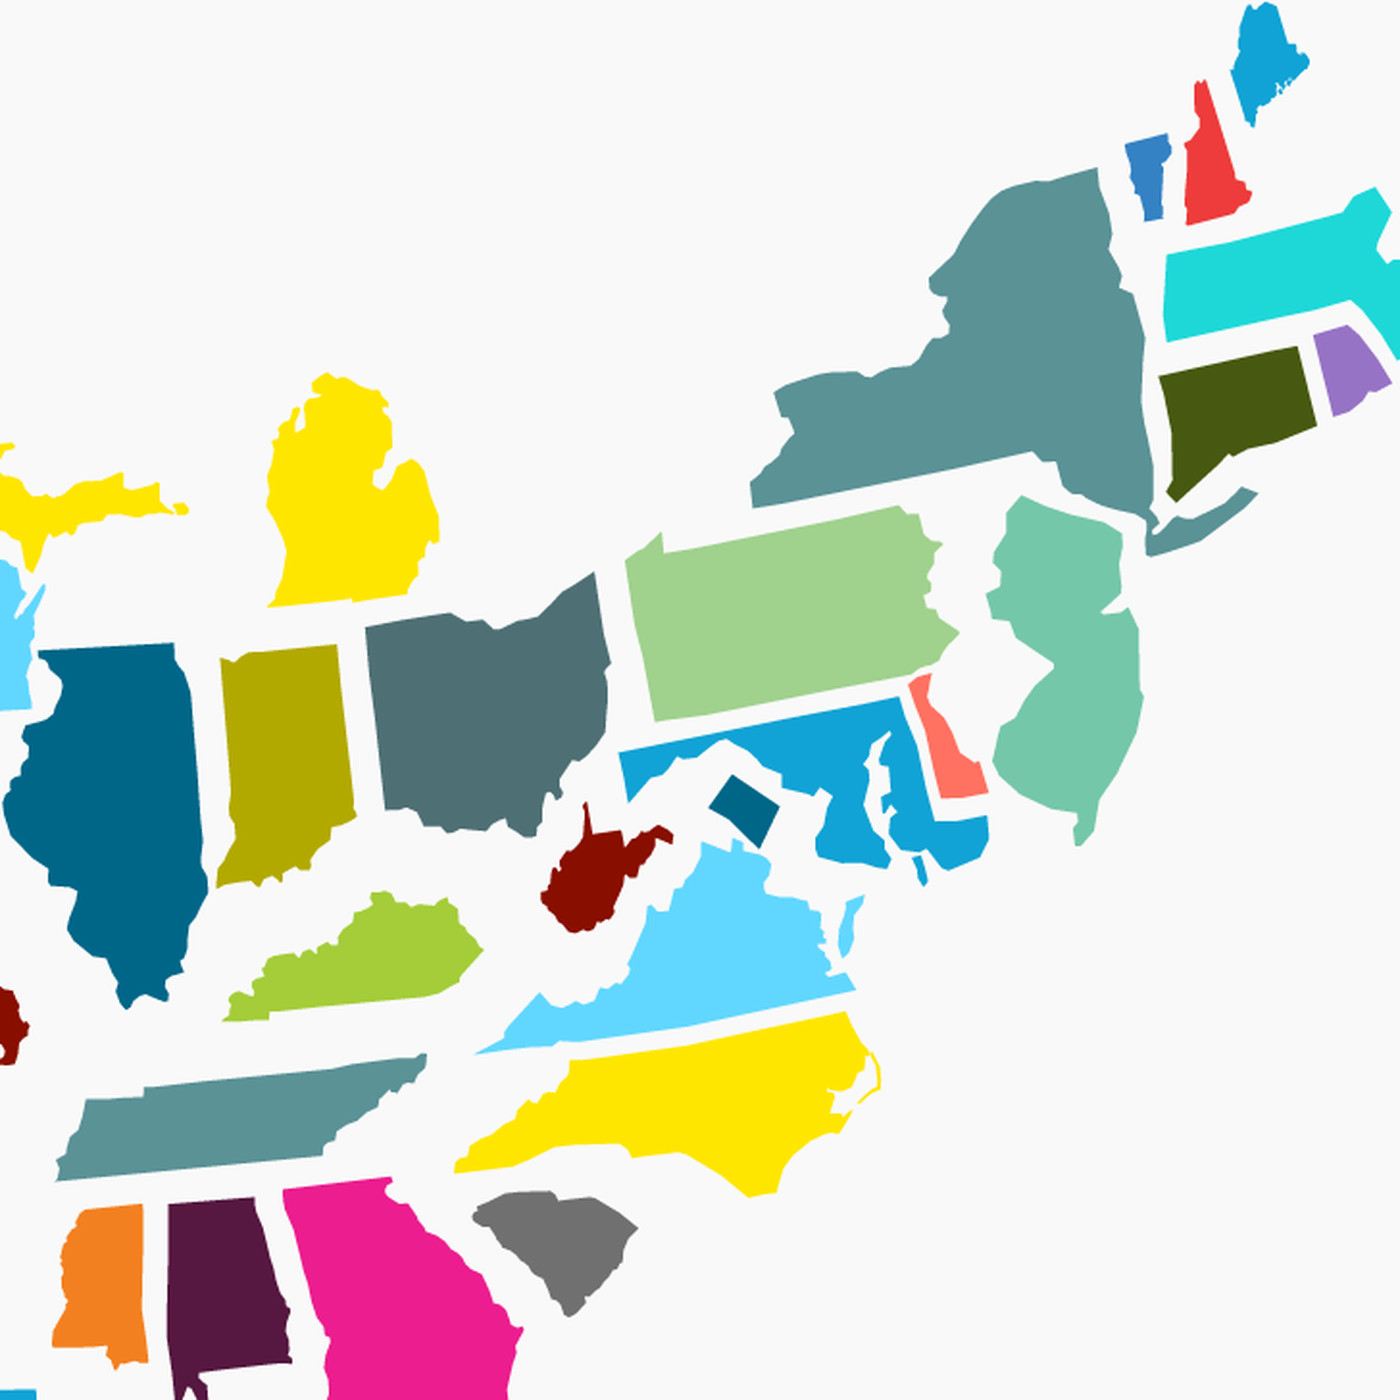 United States Of America Map Of States.This Is What The United States Looks Like If You Scale States By